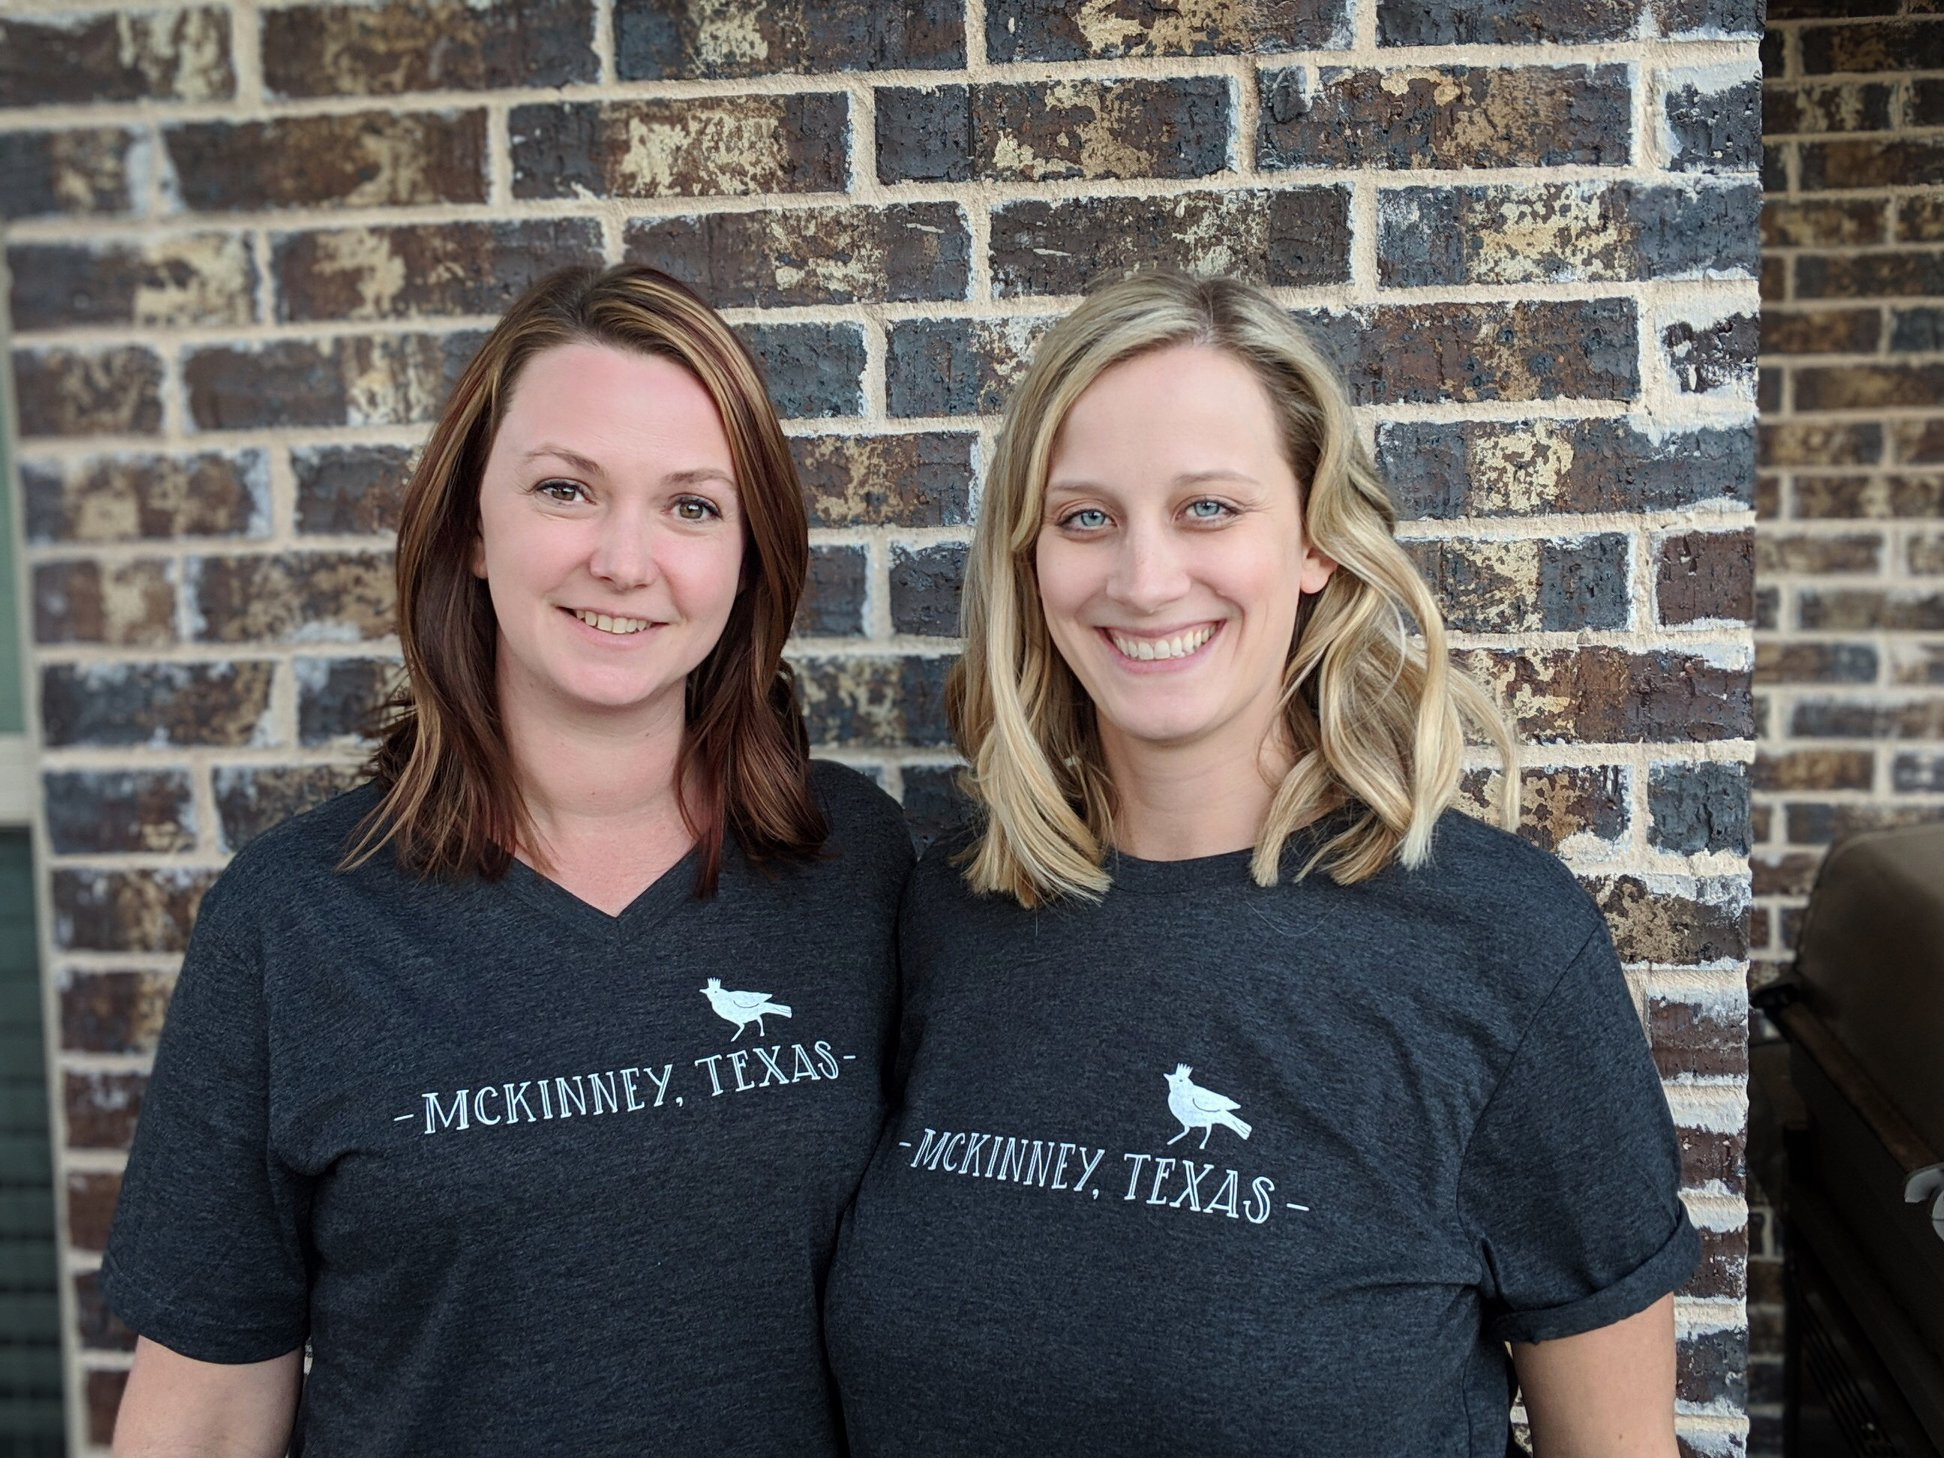 001-Meet Cassie & Megan | The Owners of Eat, Drink & Be McKinney